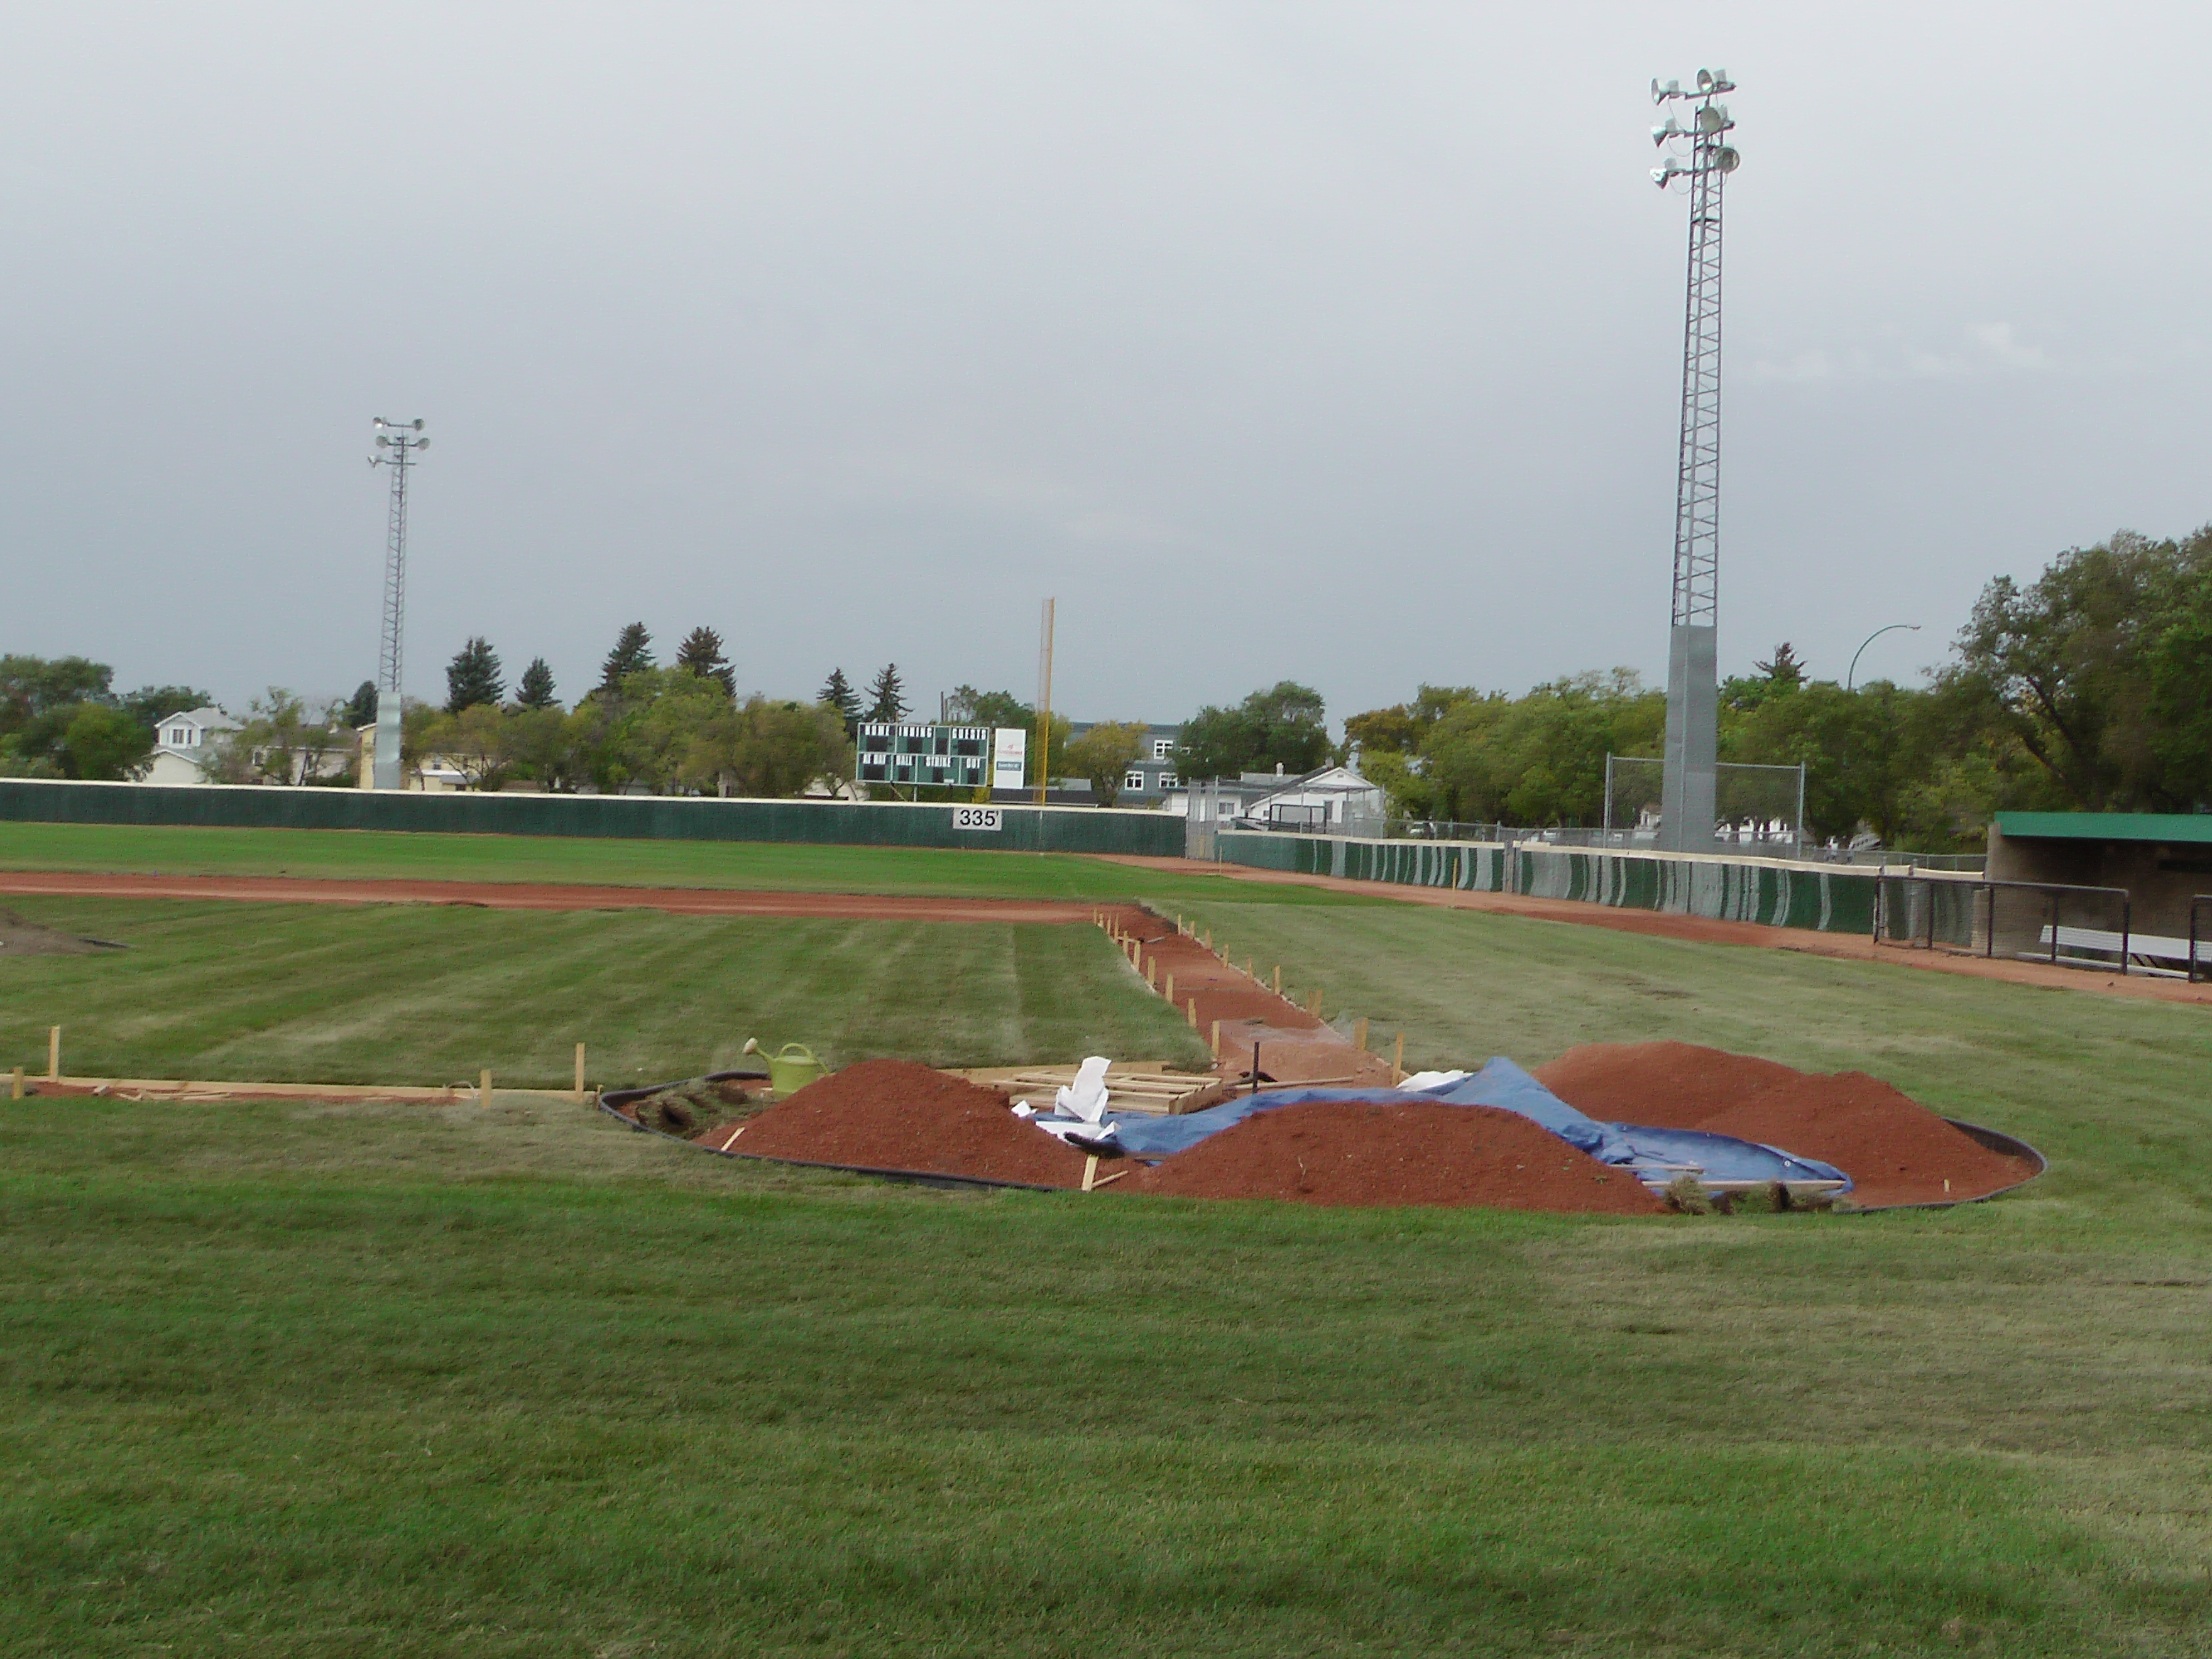 Sept 7 & 8 2018, Optimist Park Field Renovations, sod down being watered - Image 22